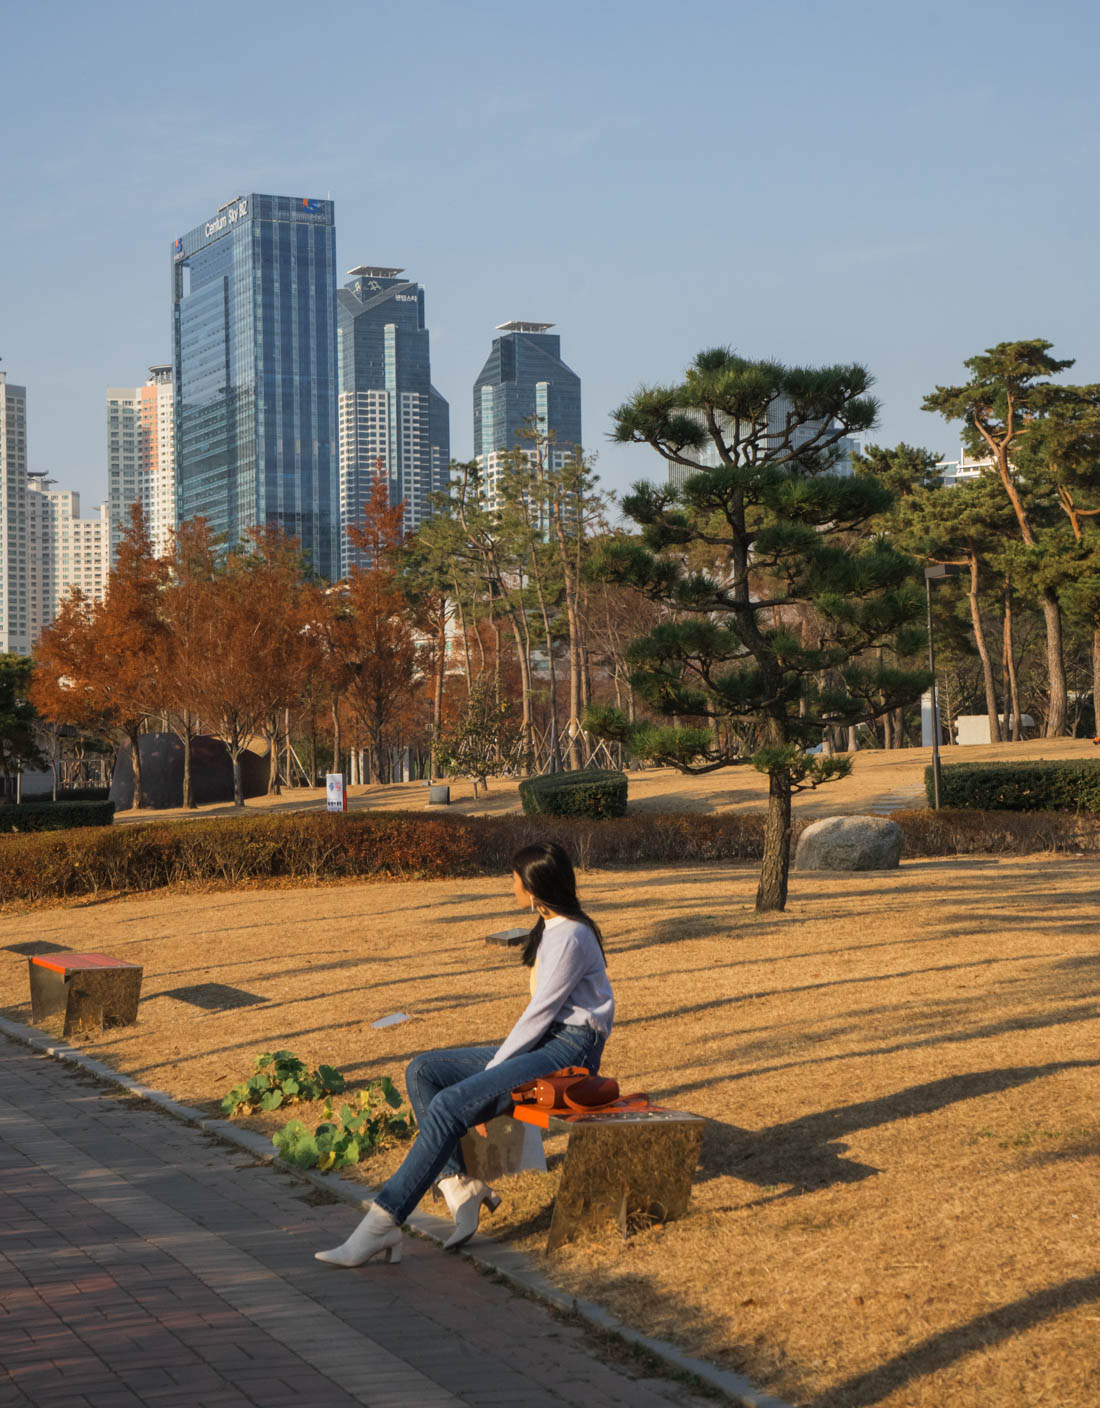 Shinsegae Centum City autumn in busan, korea